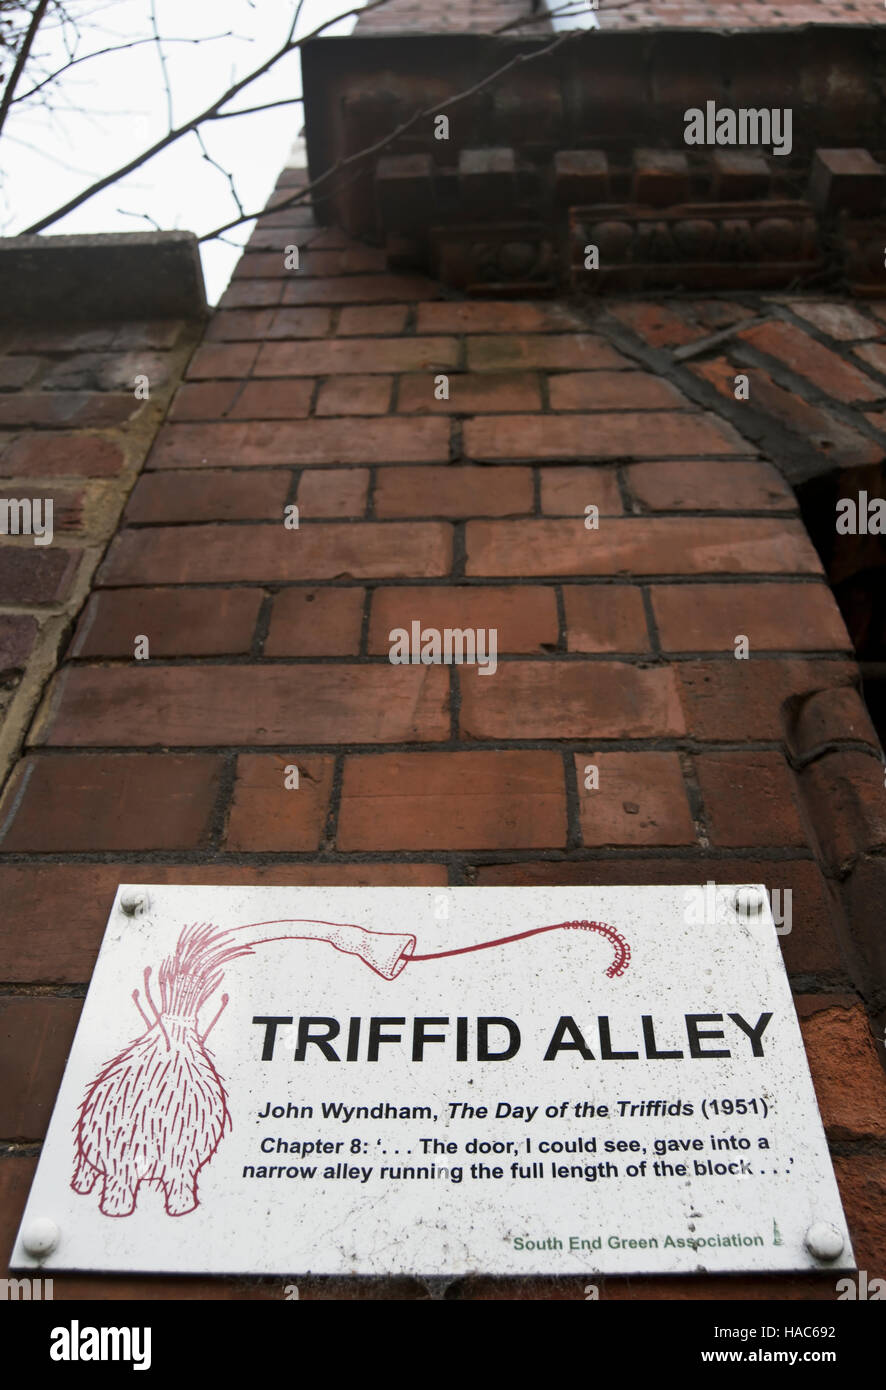 plaque marking triffid alley, so nicknamed for its part in the john wyndham novel, the day of the triffids, hampstead, - Stock Image